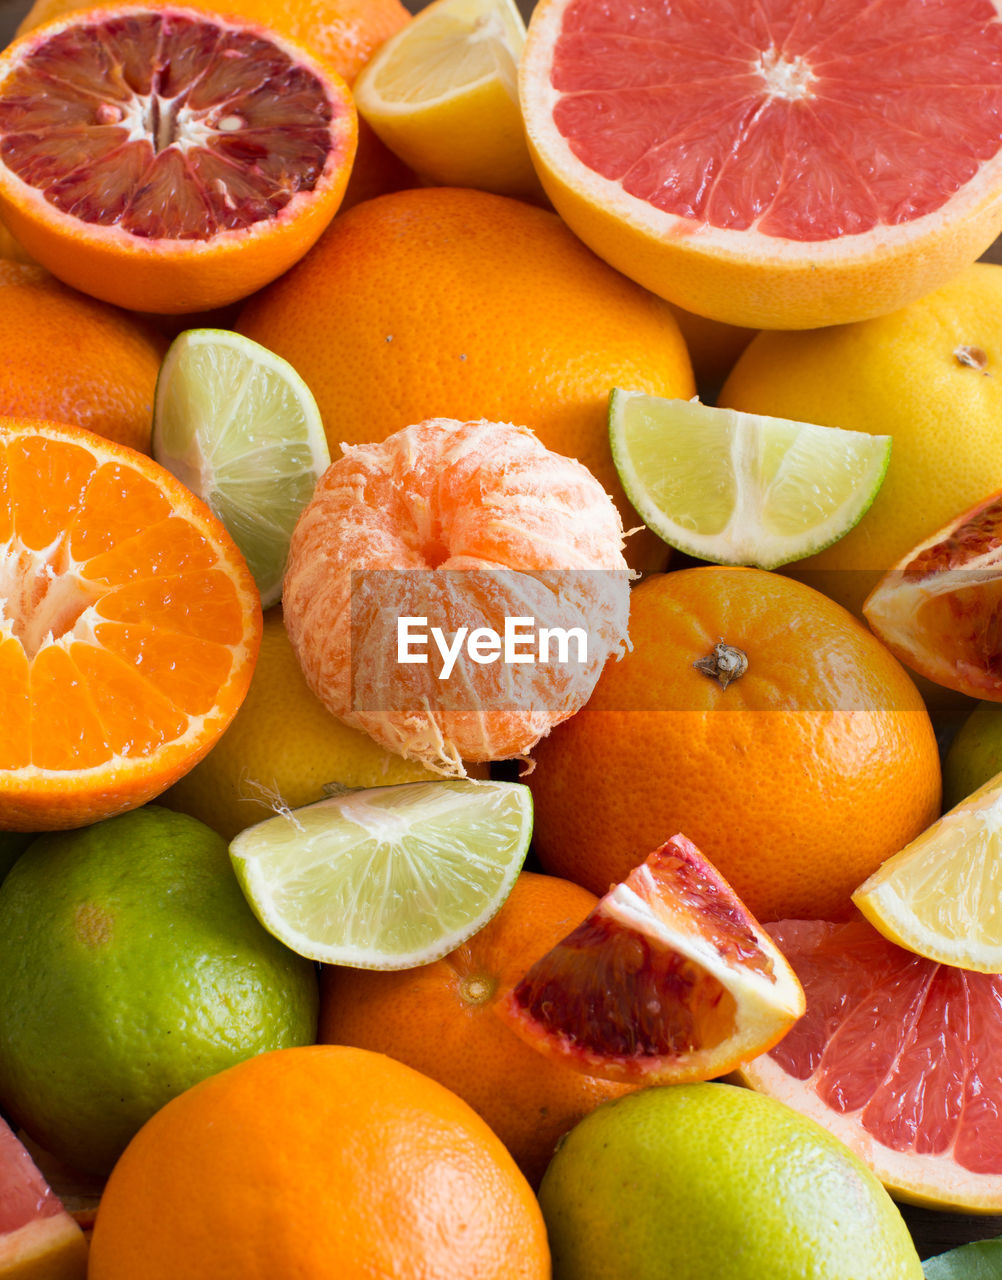 fruit, healthy eating, food, food and drink, citrus fruit, orange color, wellbeing, freshness, orange, orange - fruit, slice, no people, cross section, full frame, lime, lemon, close-up, large group of objects, still life, choice, ripe